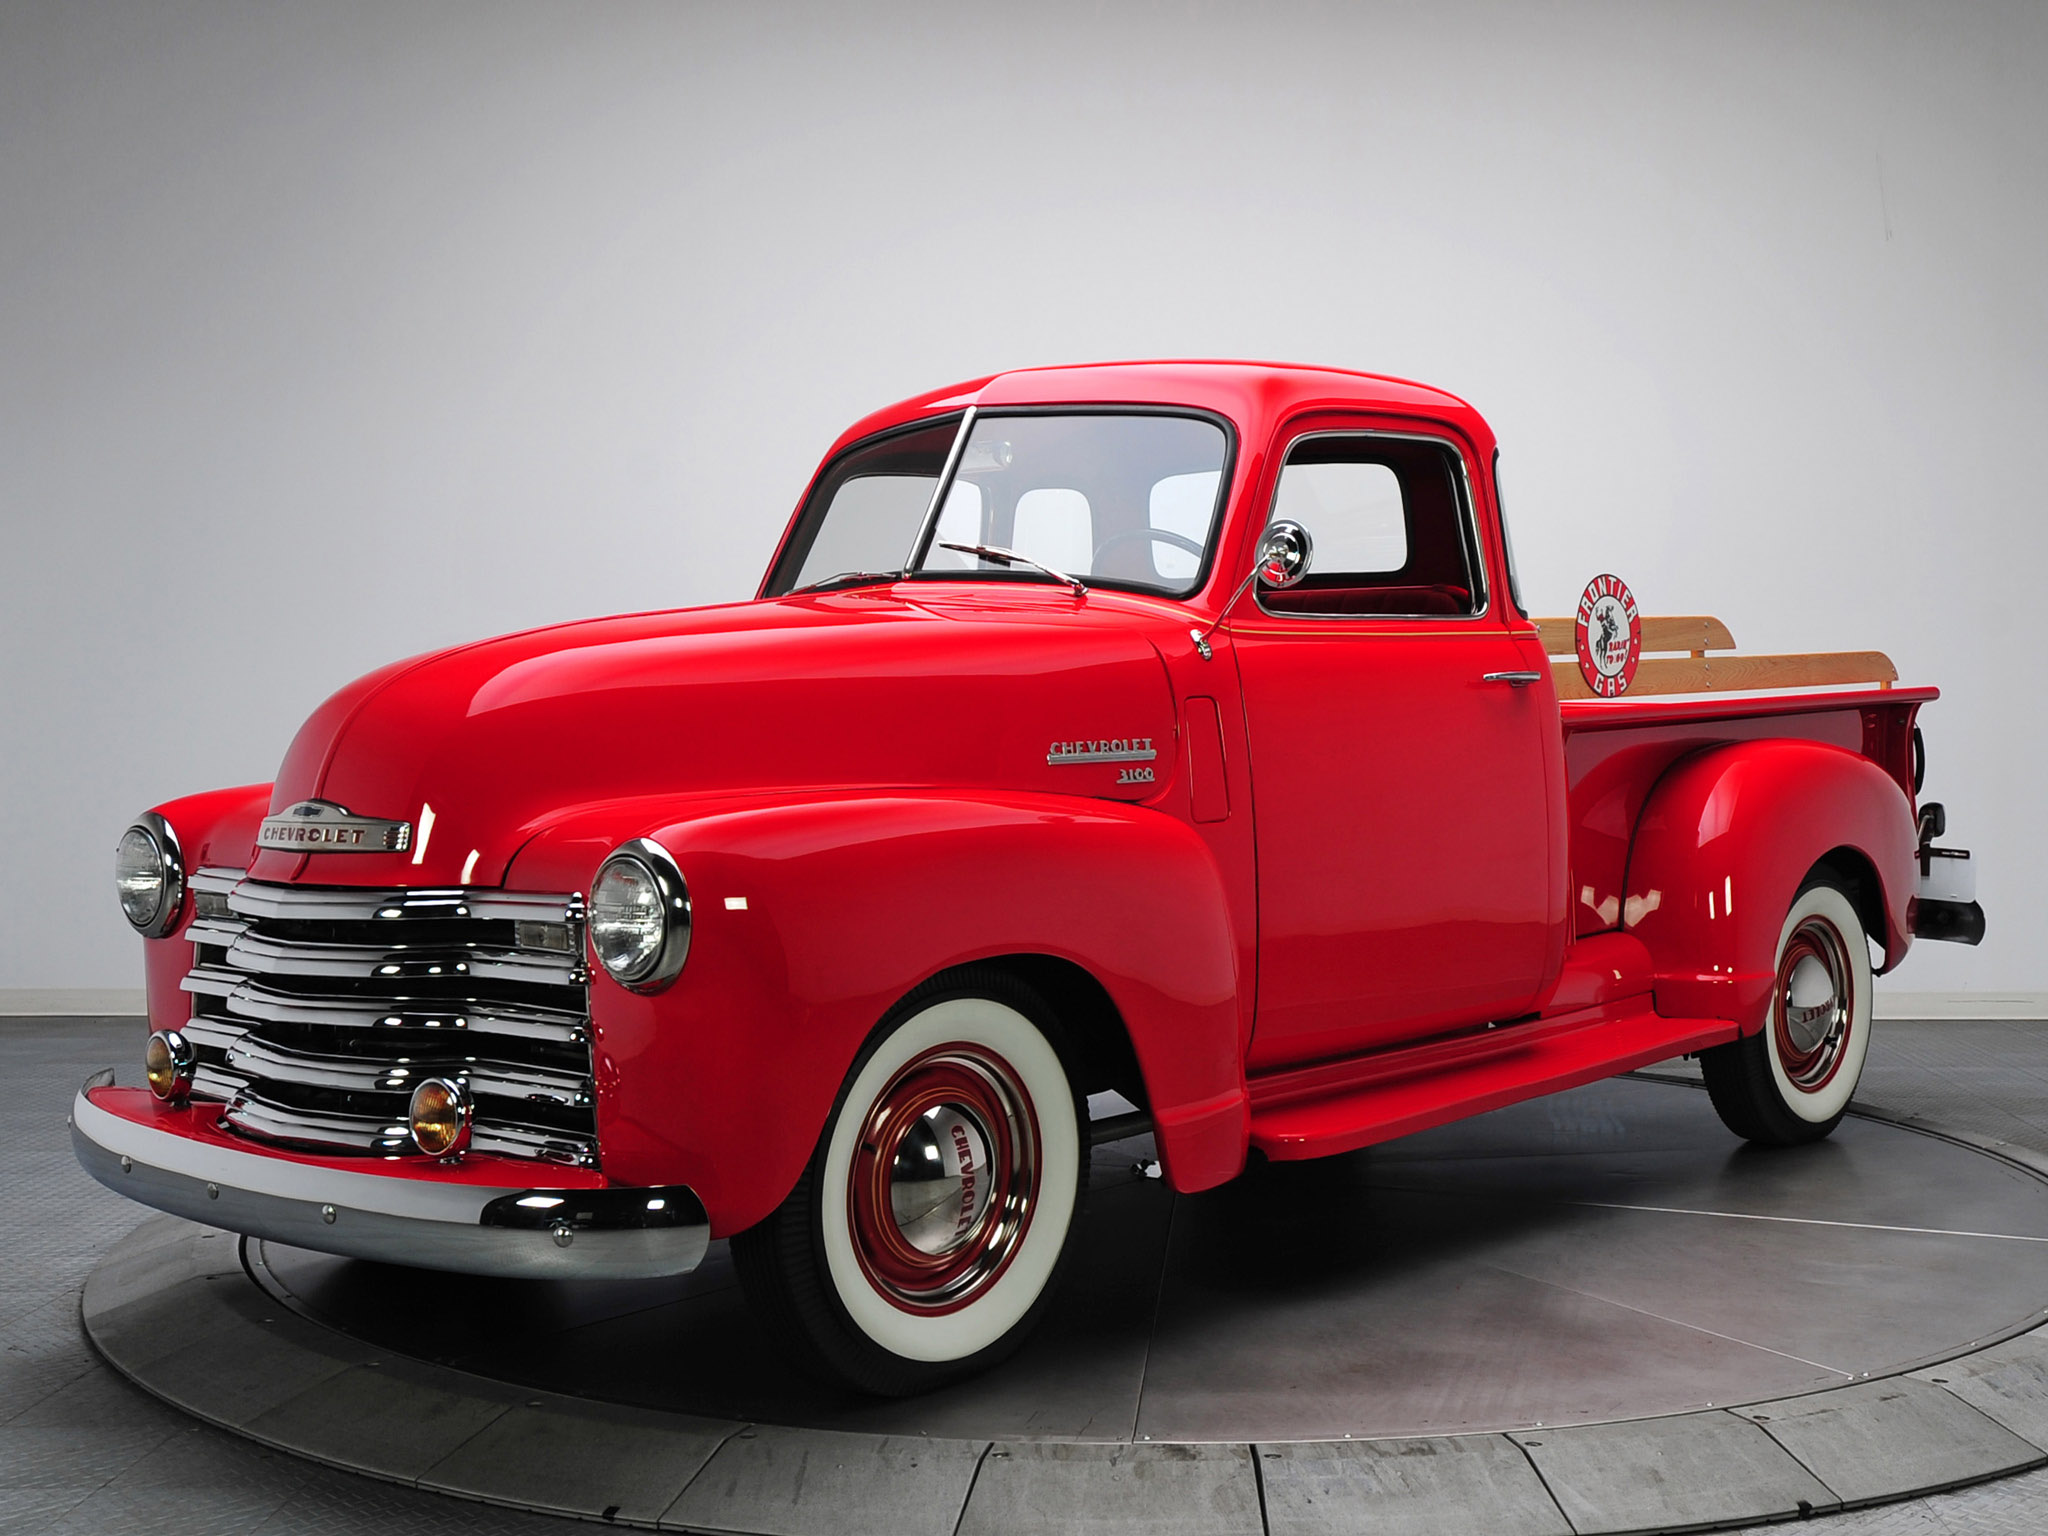 1950 chevrolet 3100 pickup hp 3104 truck retro g wallpaper 2048x1536 104933 wallpaperup. Black Bedroom Furniture Sets. Home Design Ideas